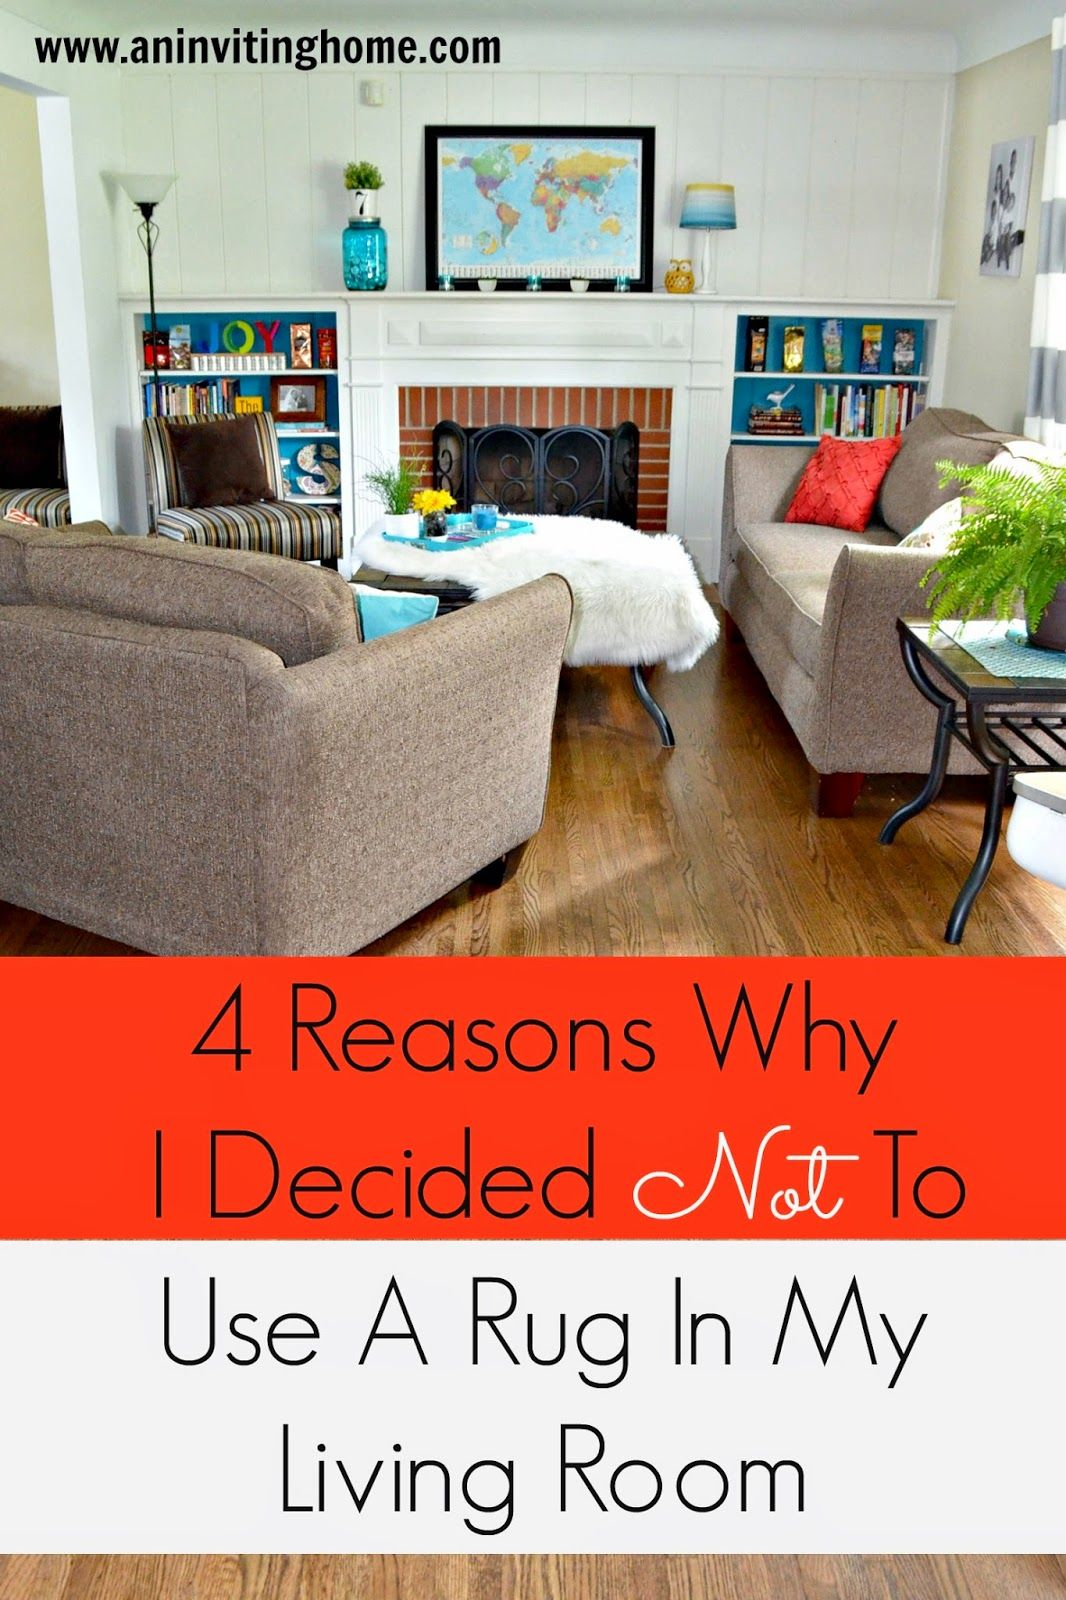 4 reasons why i decided not to use a rug in my living room Pinner says: I love this! Remembering what is important is more important ;)